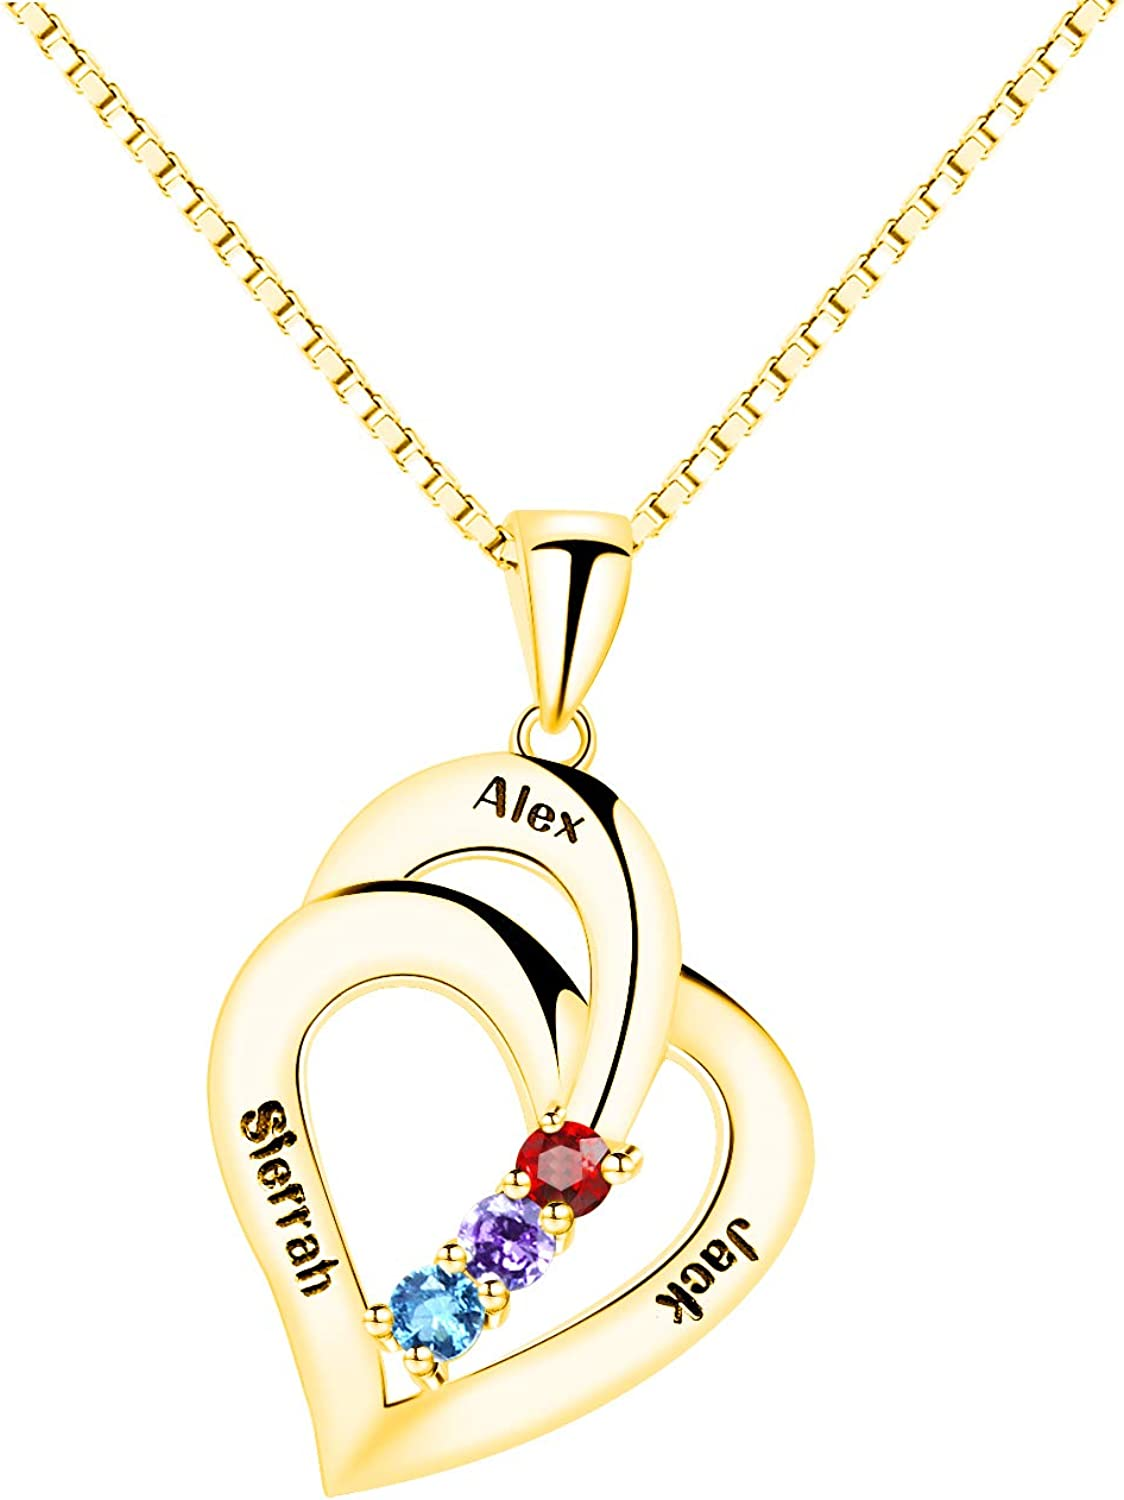 LucyFortune Personalized Sterling Silver 3 Heart Simulated Birthstone Mothers Pendant Necklace with Names Engraved Pendant Family Necklace for Women